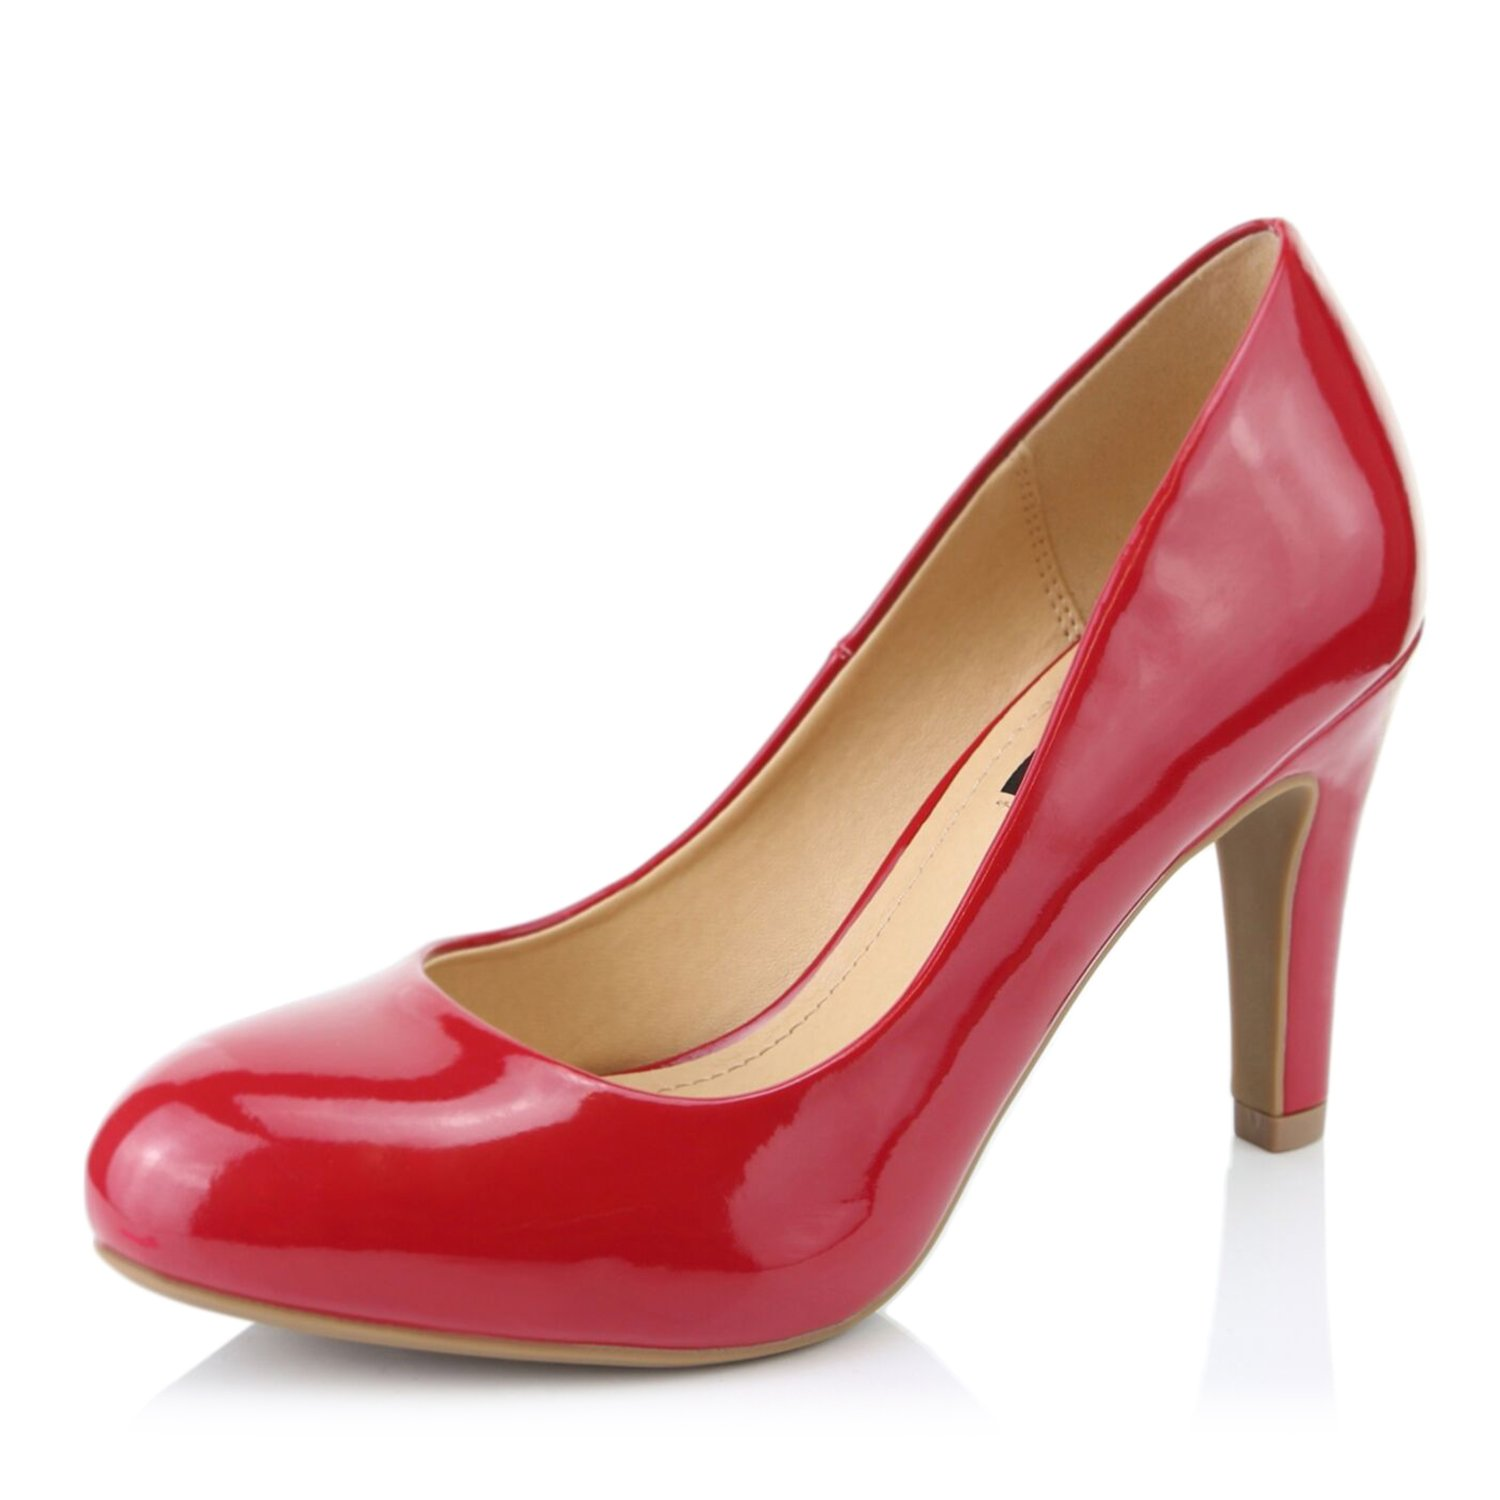 DailyShoes Women's Comfortable Cushioned Slip On Low Heels Round Toe Dress Pumps Shoes, Red Patent Leather, 10 B(M) US